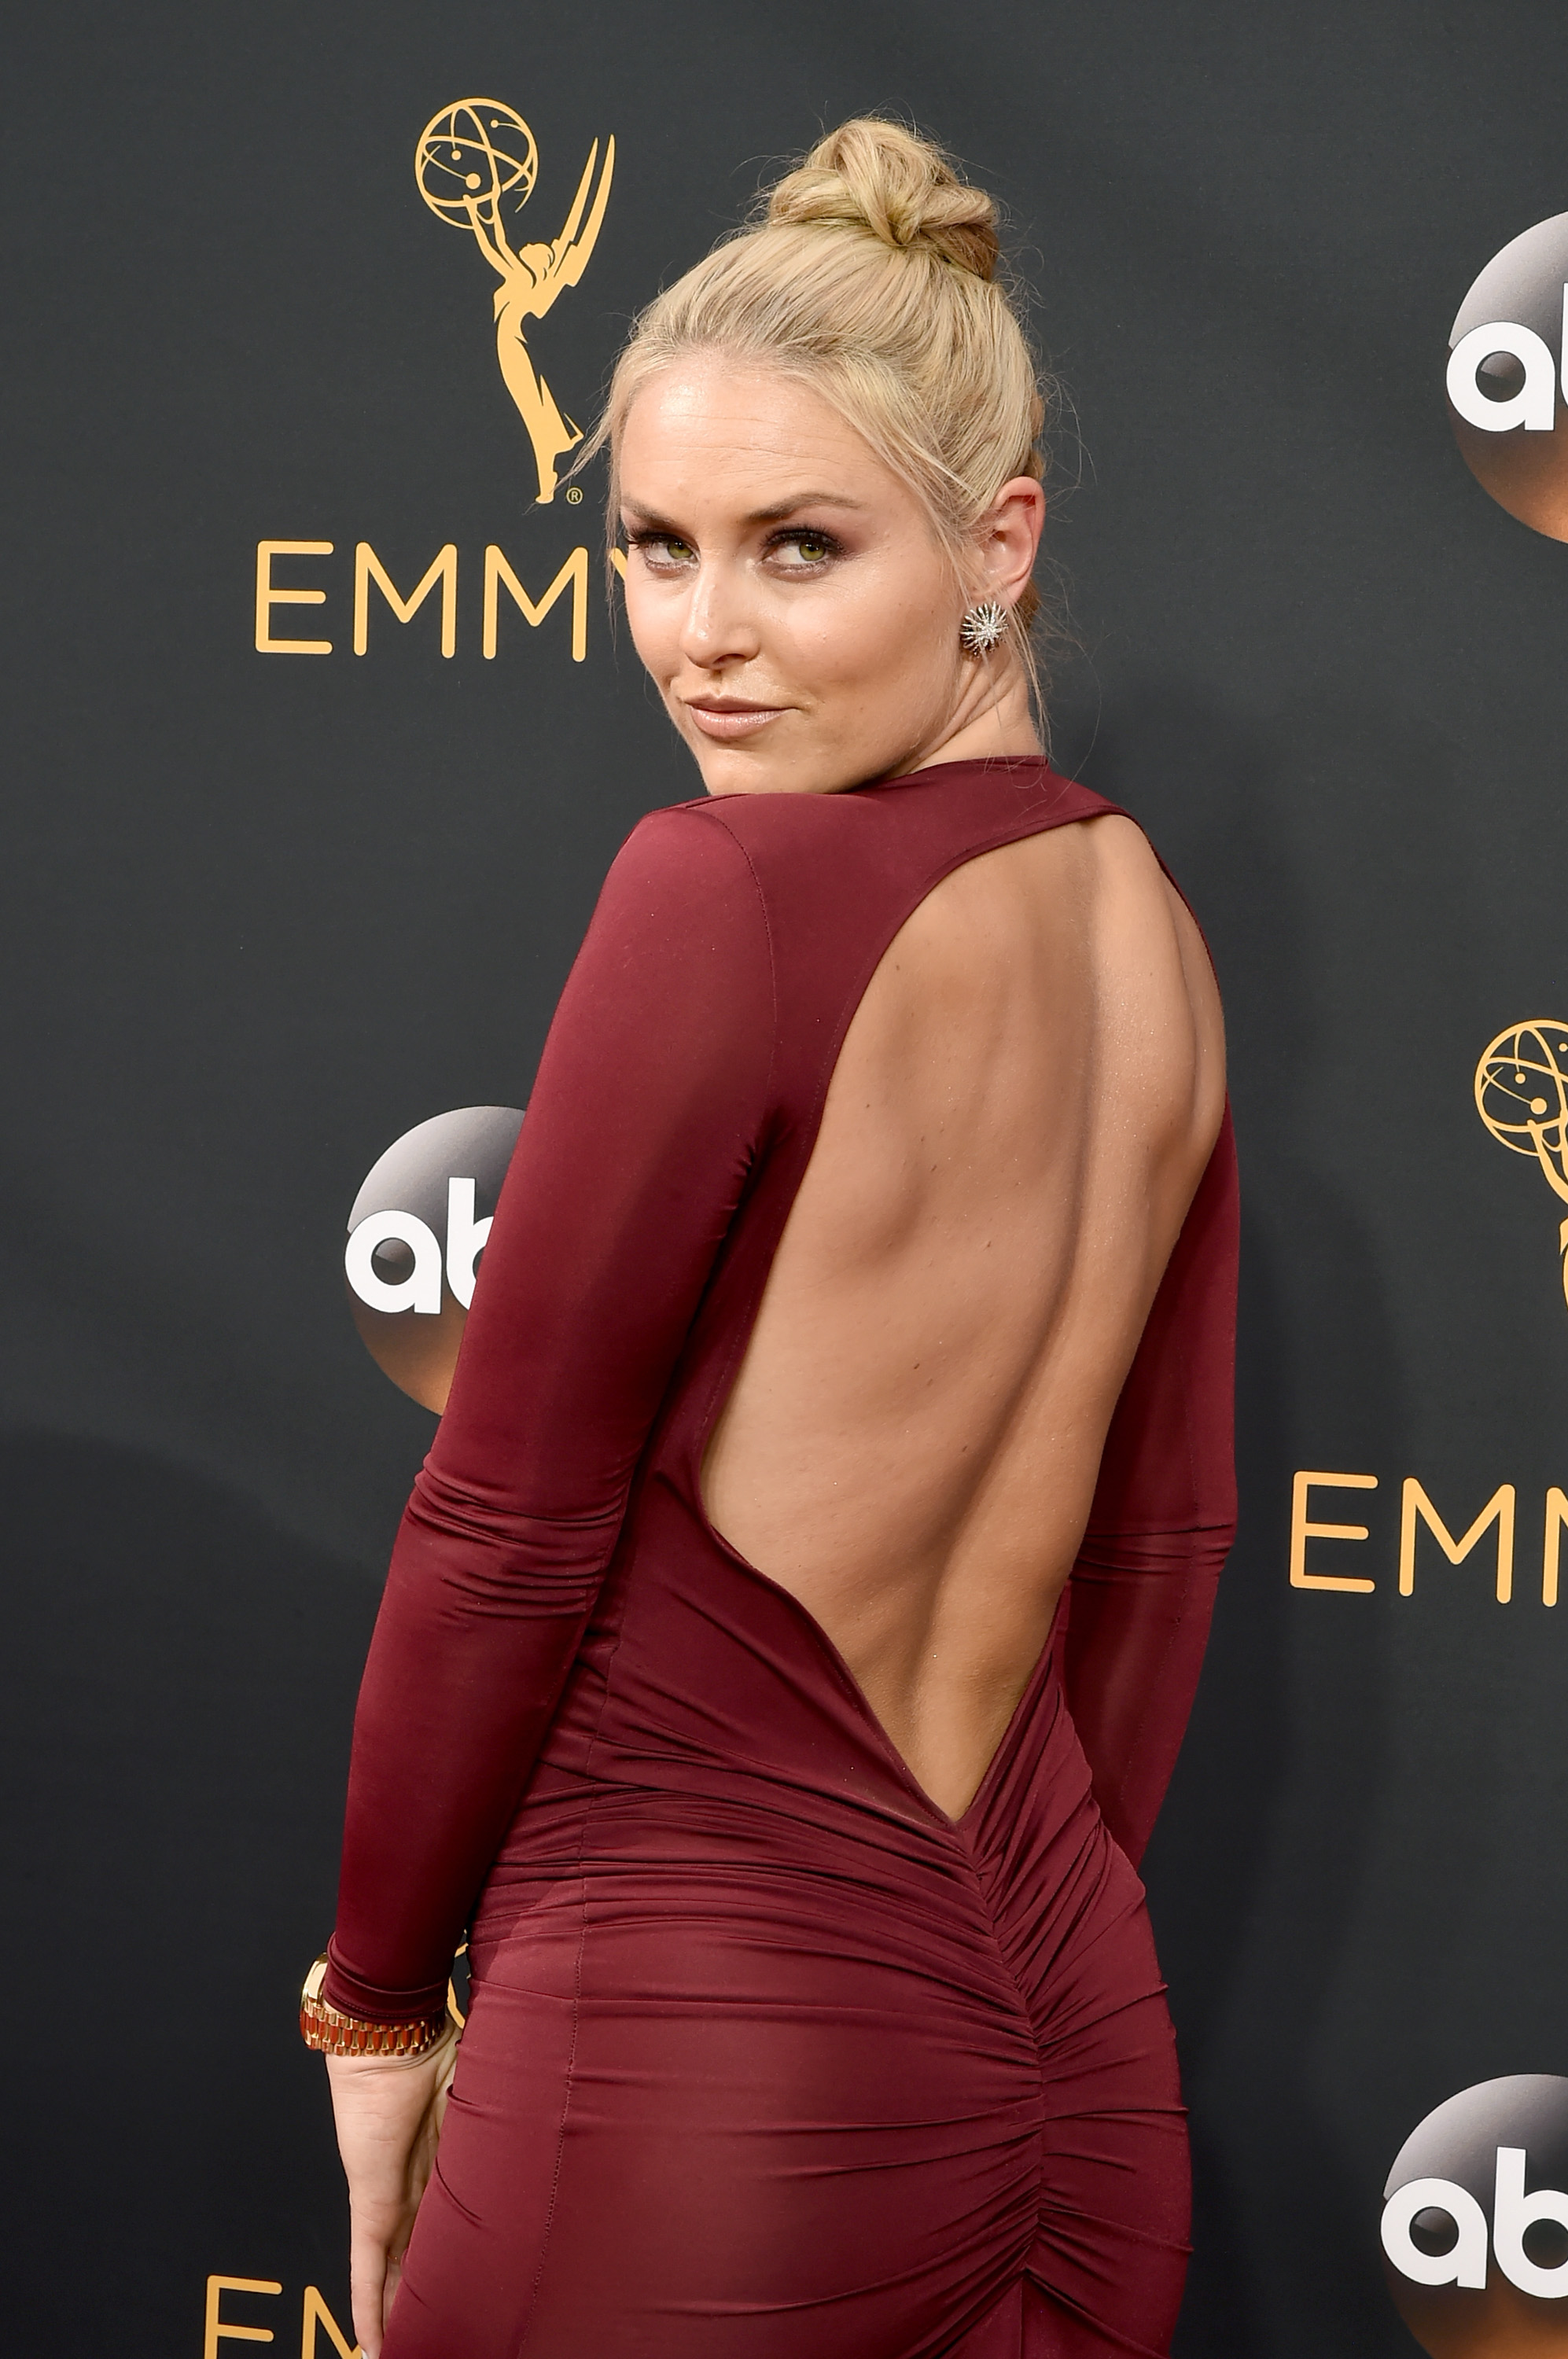 The Best Red Carpet Fashion At The 68th Emmy Awards